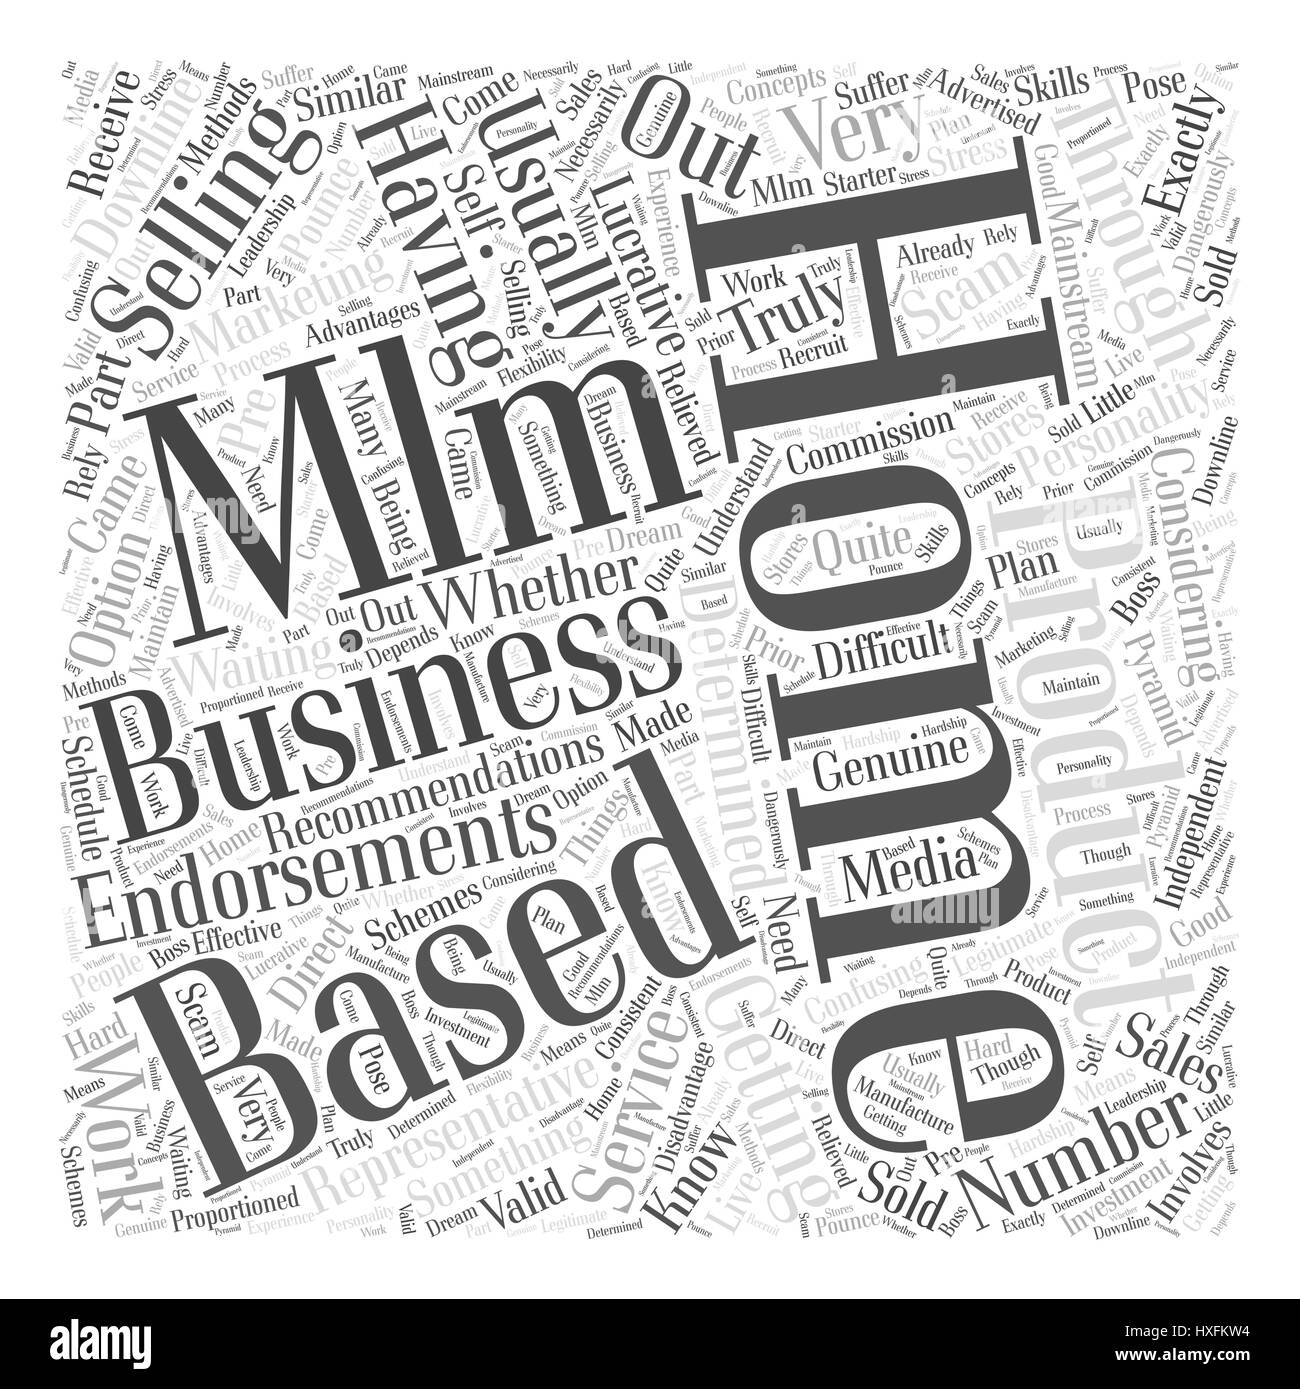 Home Based Business Black and White Stock Photos & Images - Alamy